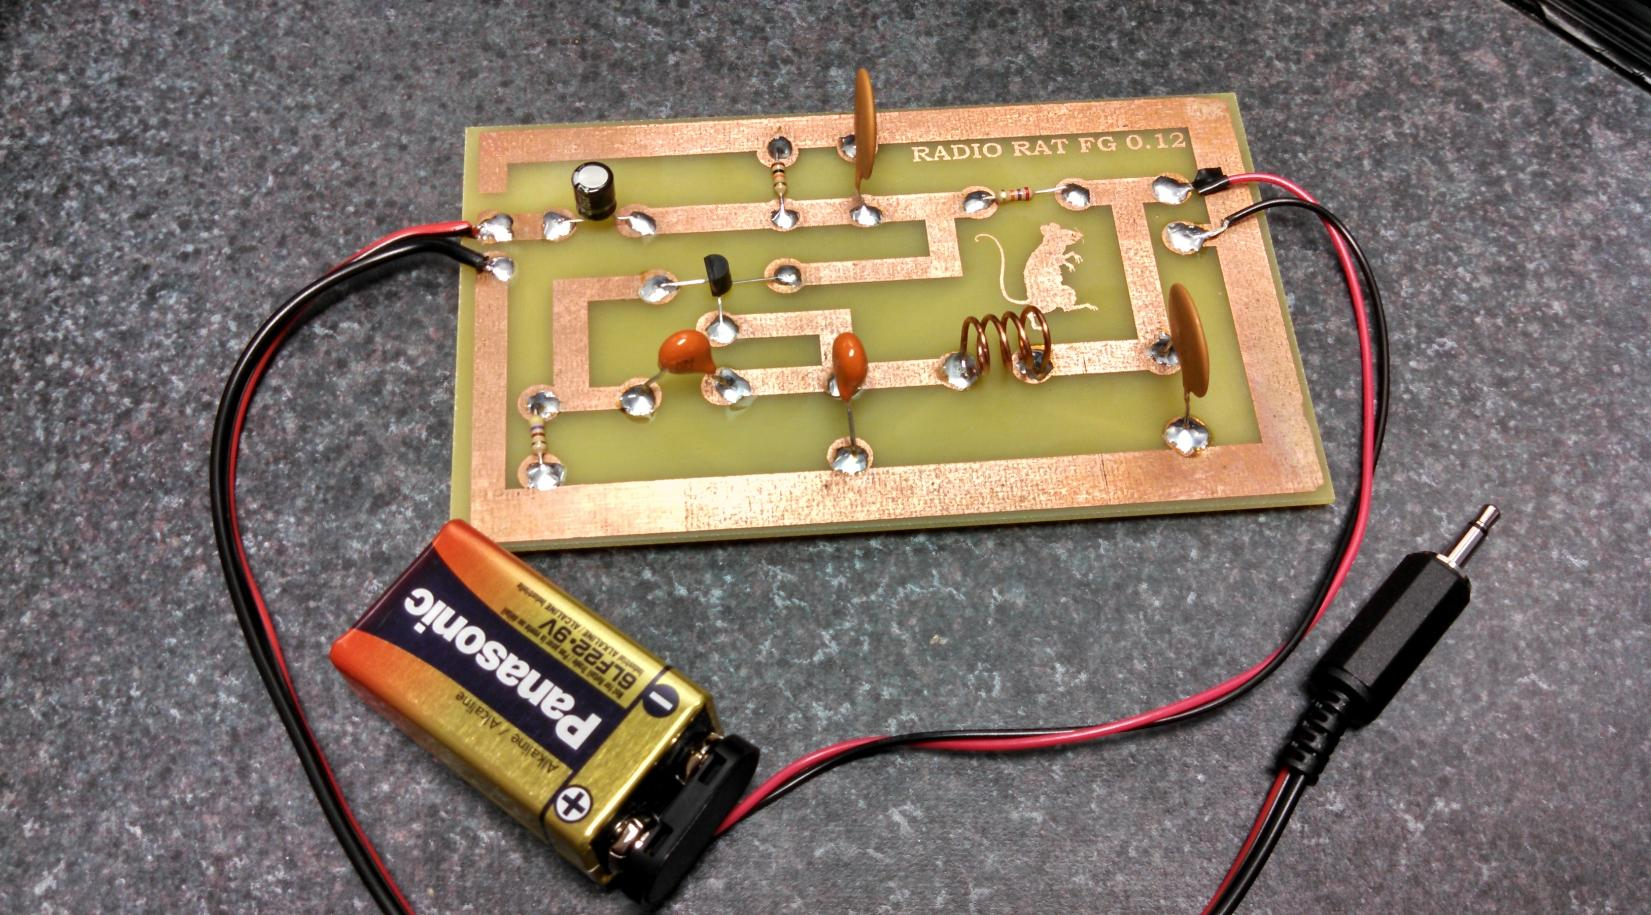 Project On Electronic Circuit Design